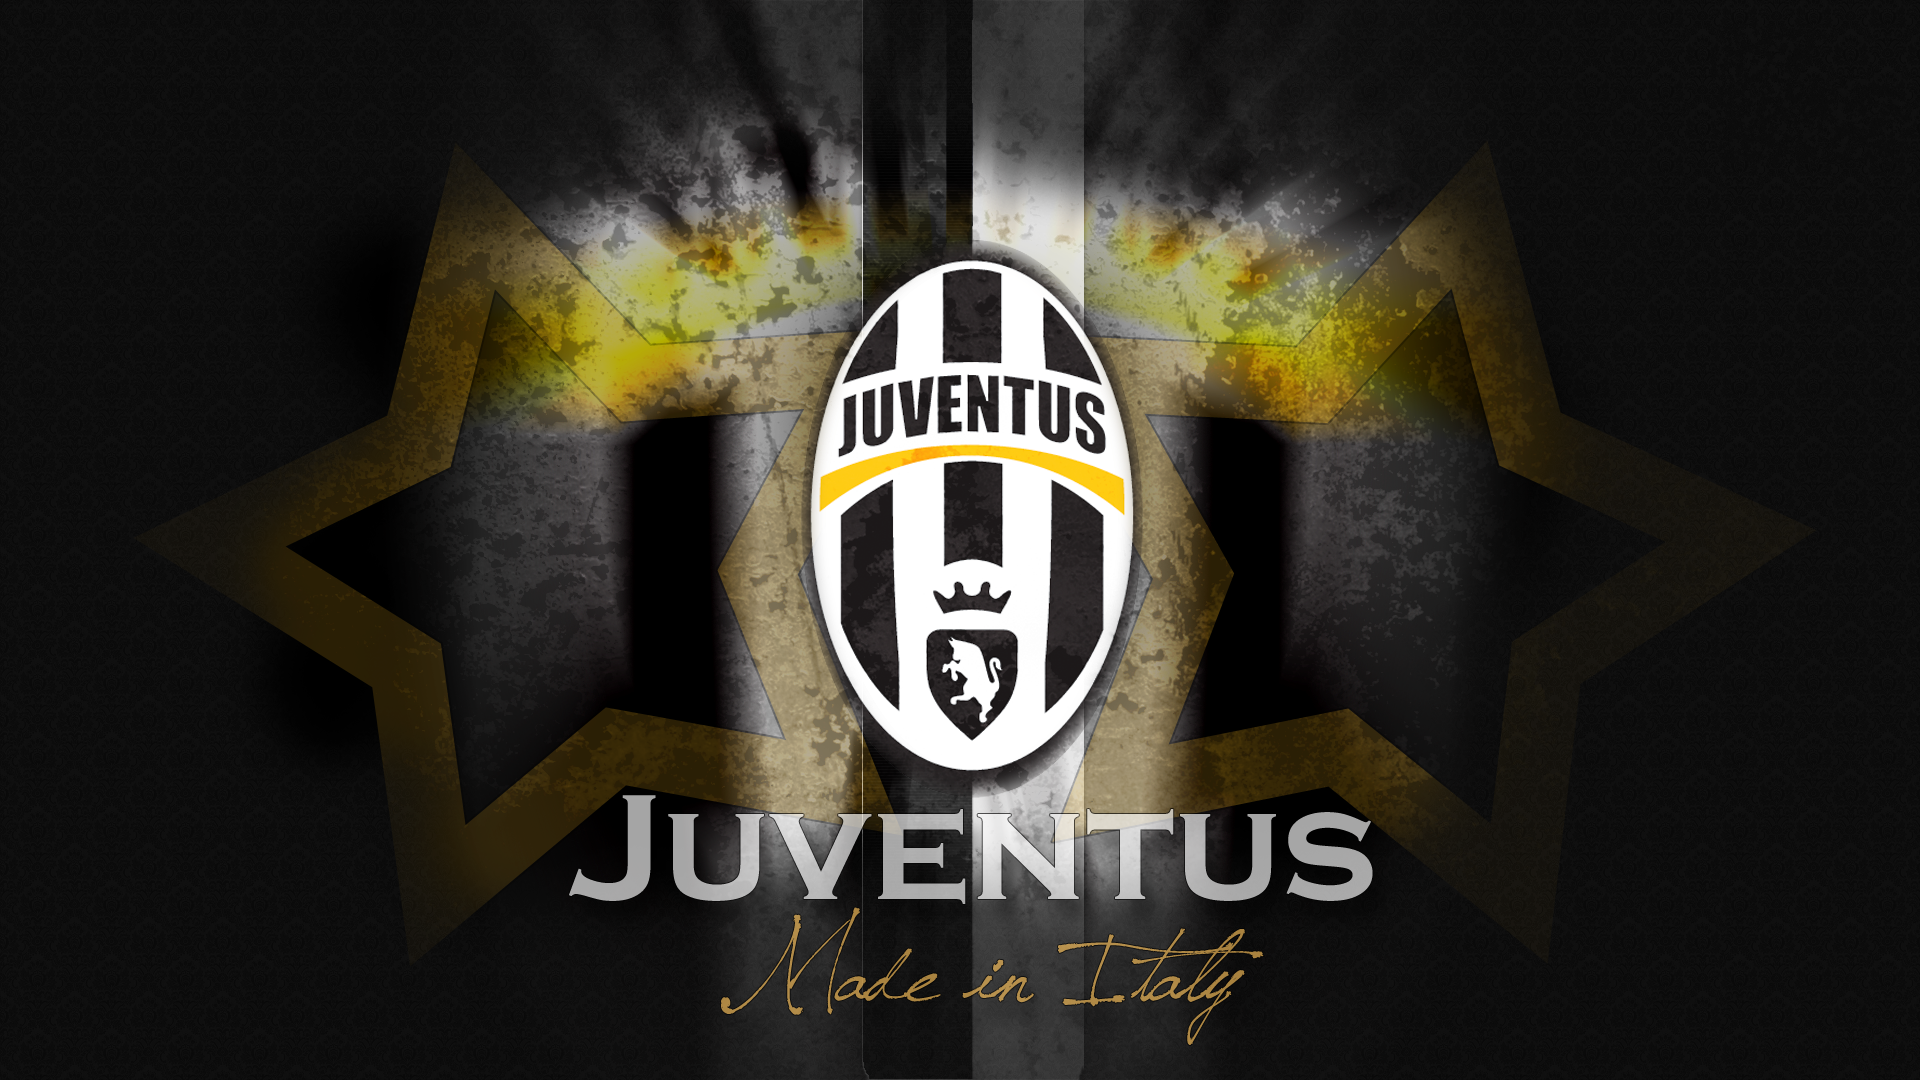 Juve Logo Hd Wallpaper Background Image 1920x1080 Id 971478 Wallpaper Abyss